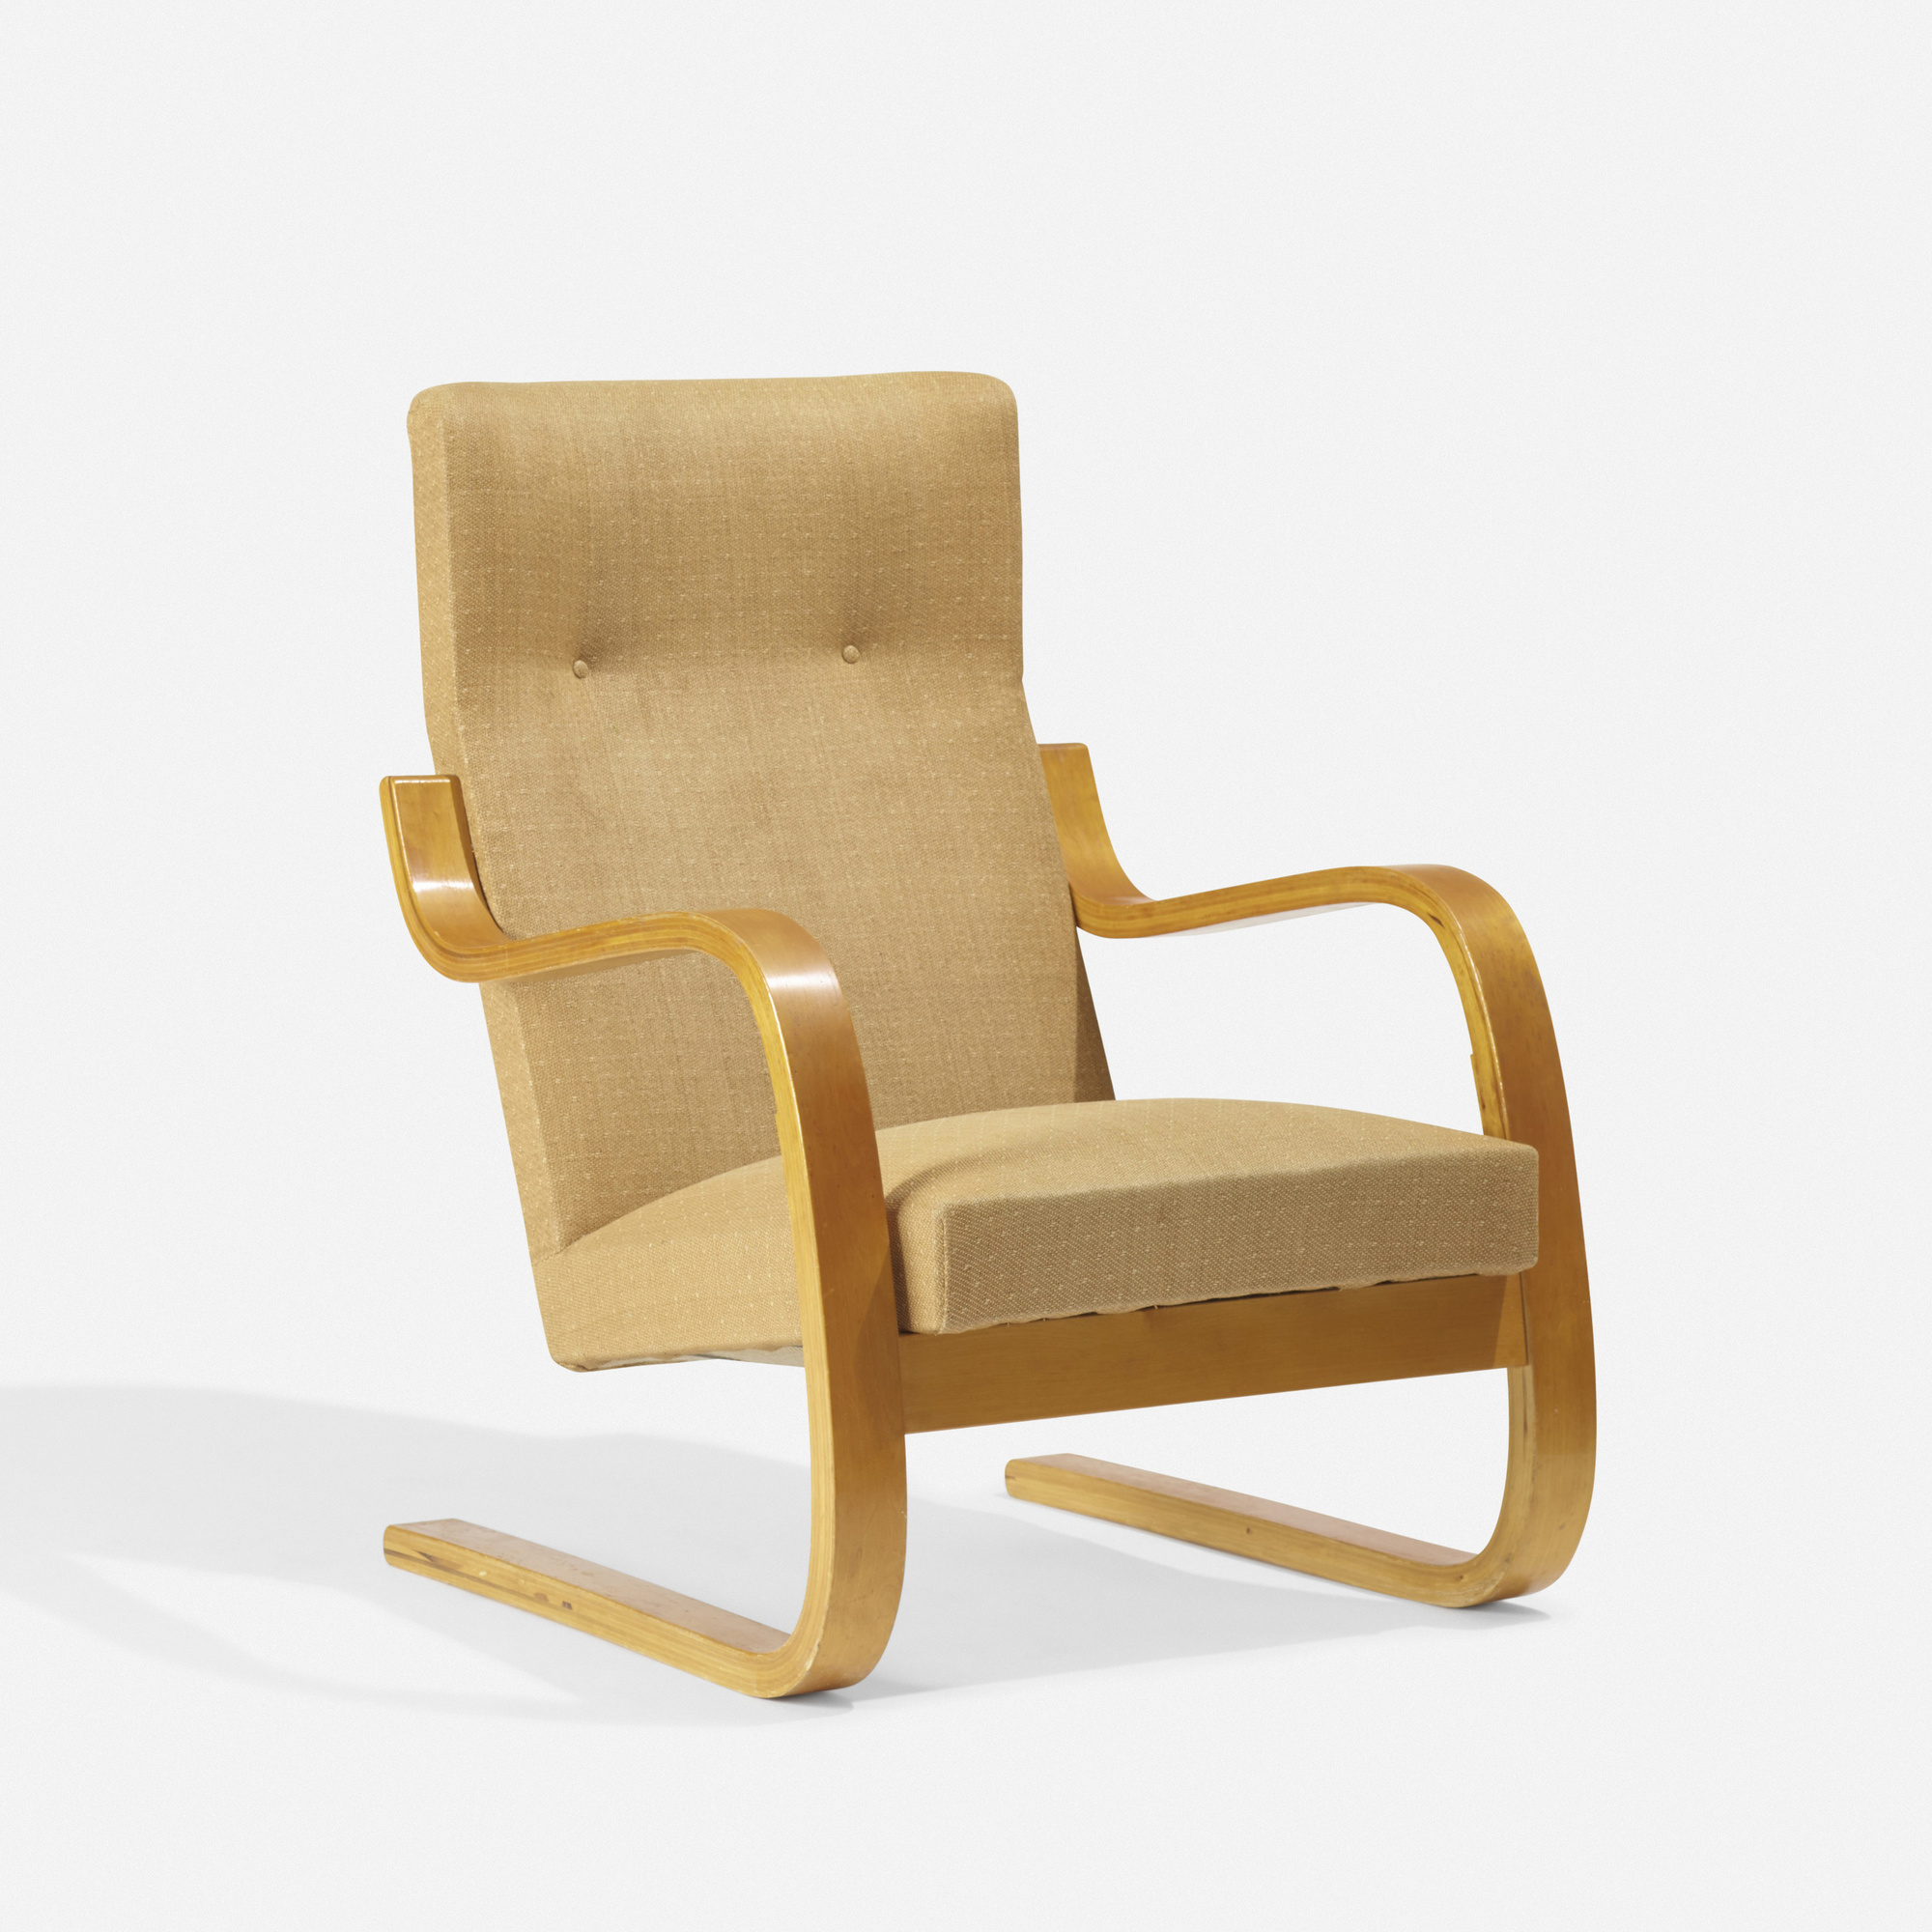 Vintage aalto chair - 203 Alvar Aalto Early Cantilevered Armchair Model 36 401 1 Of